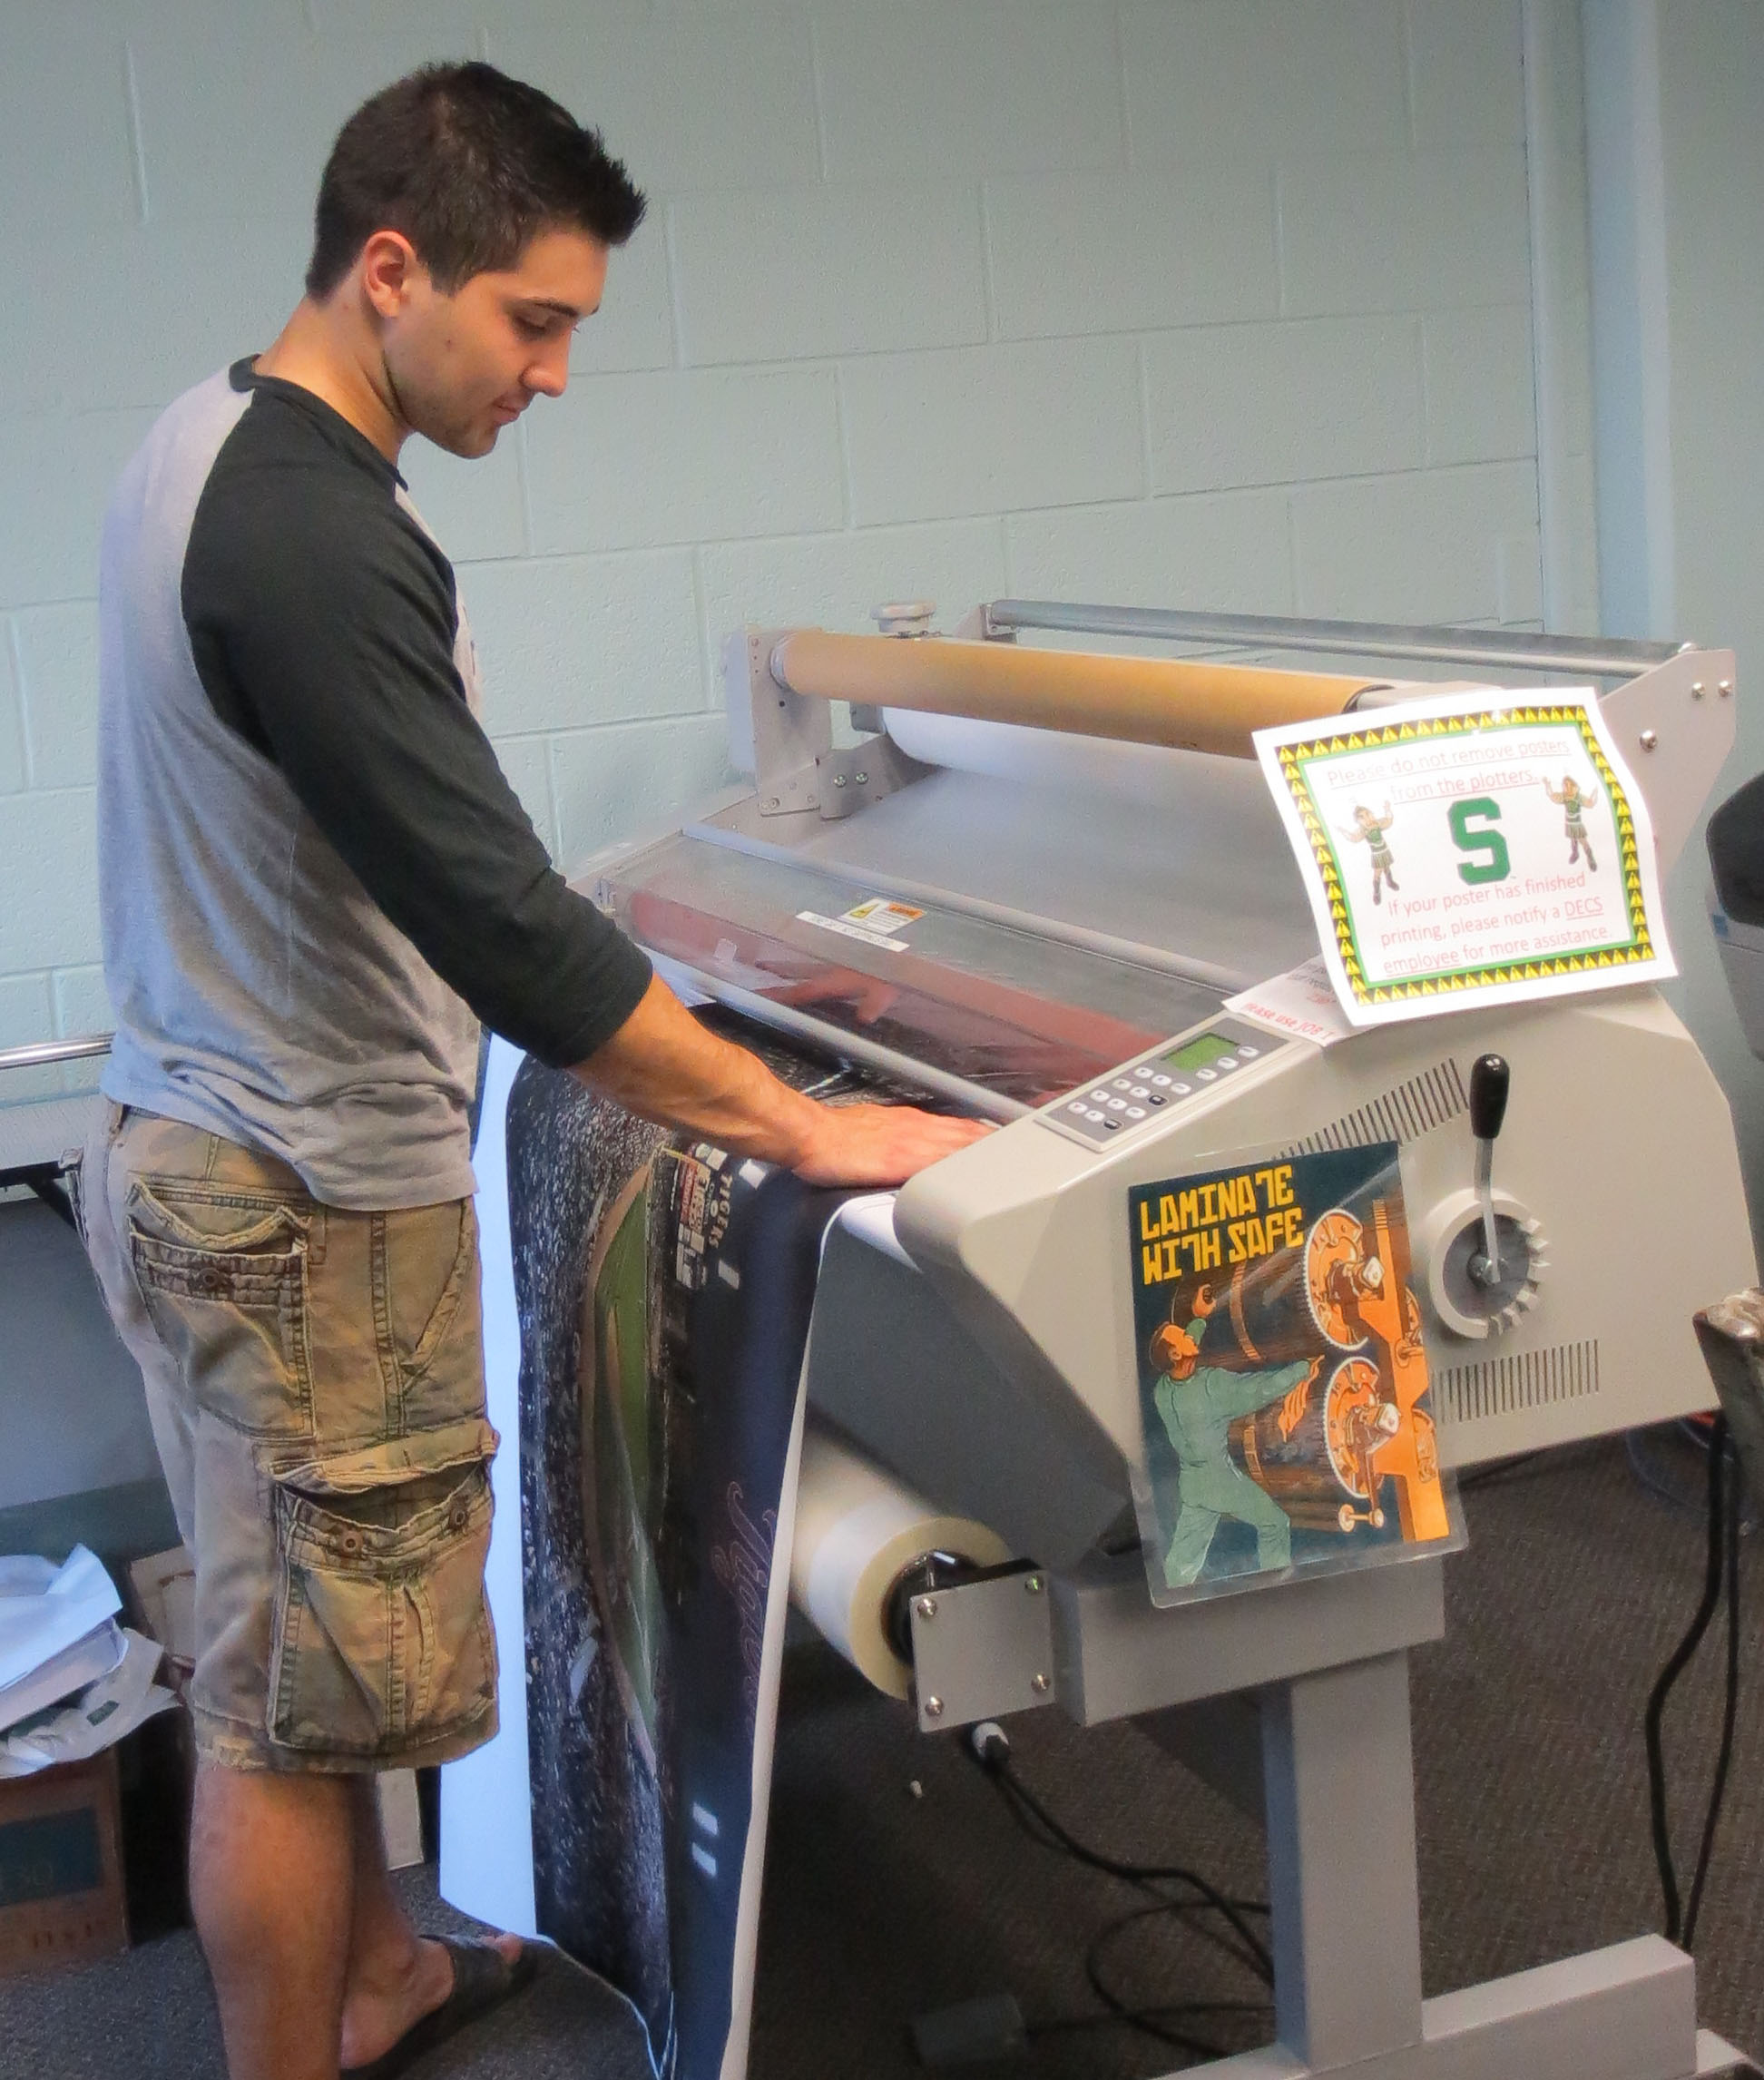 Support office staff laminating a poster